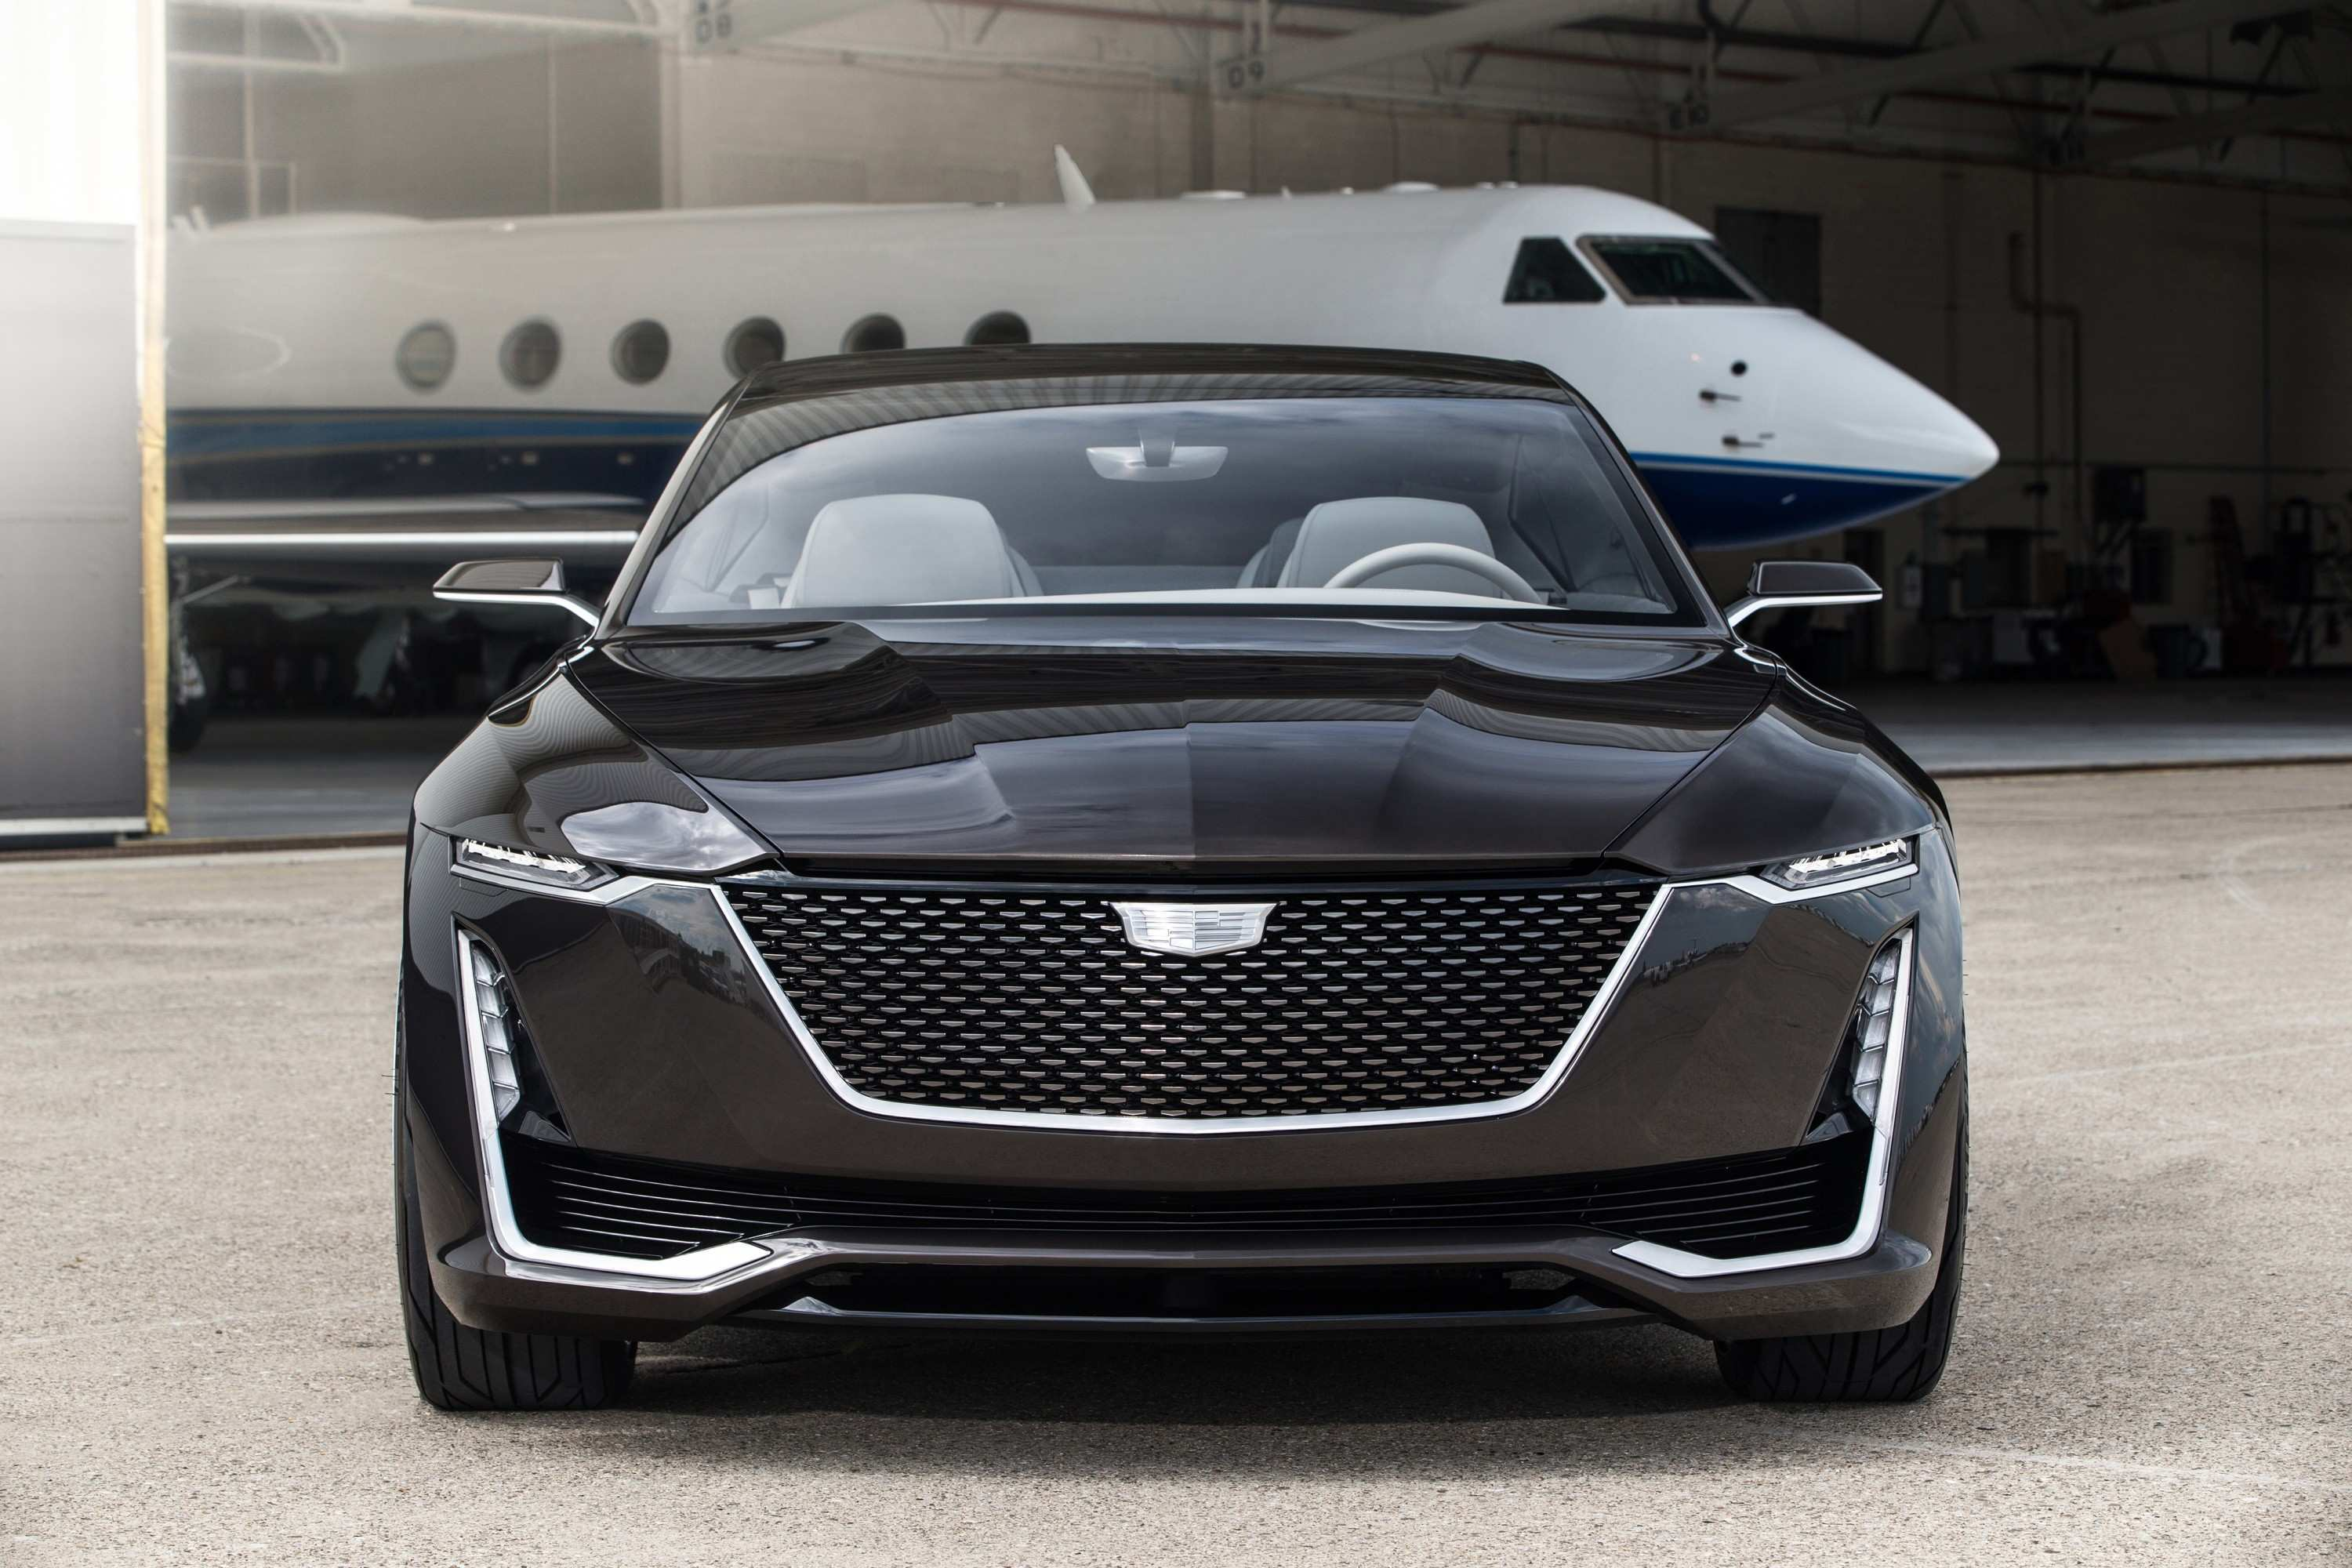 51 Best 2020 Cadillac Cars Research New